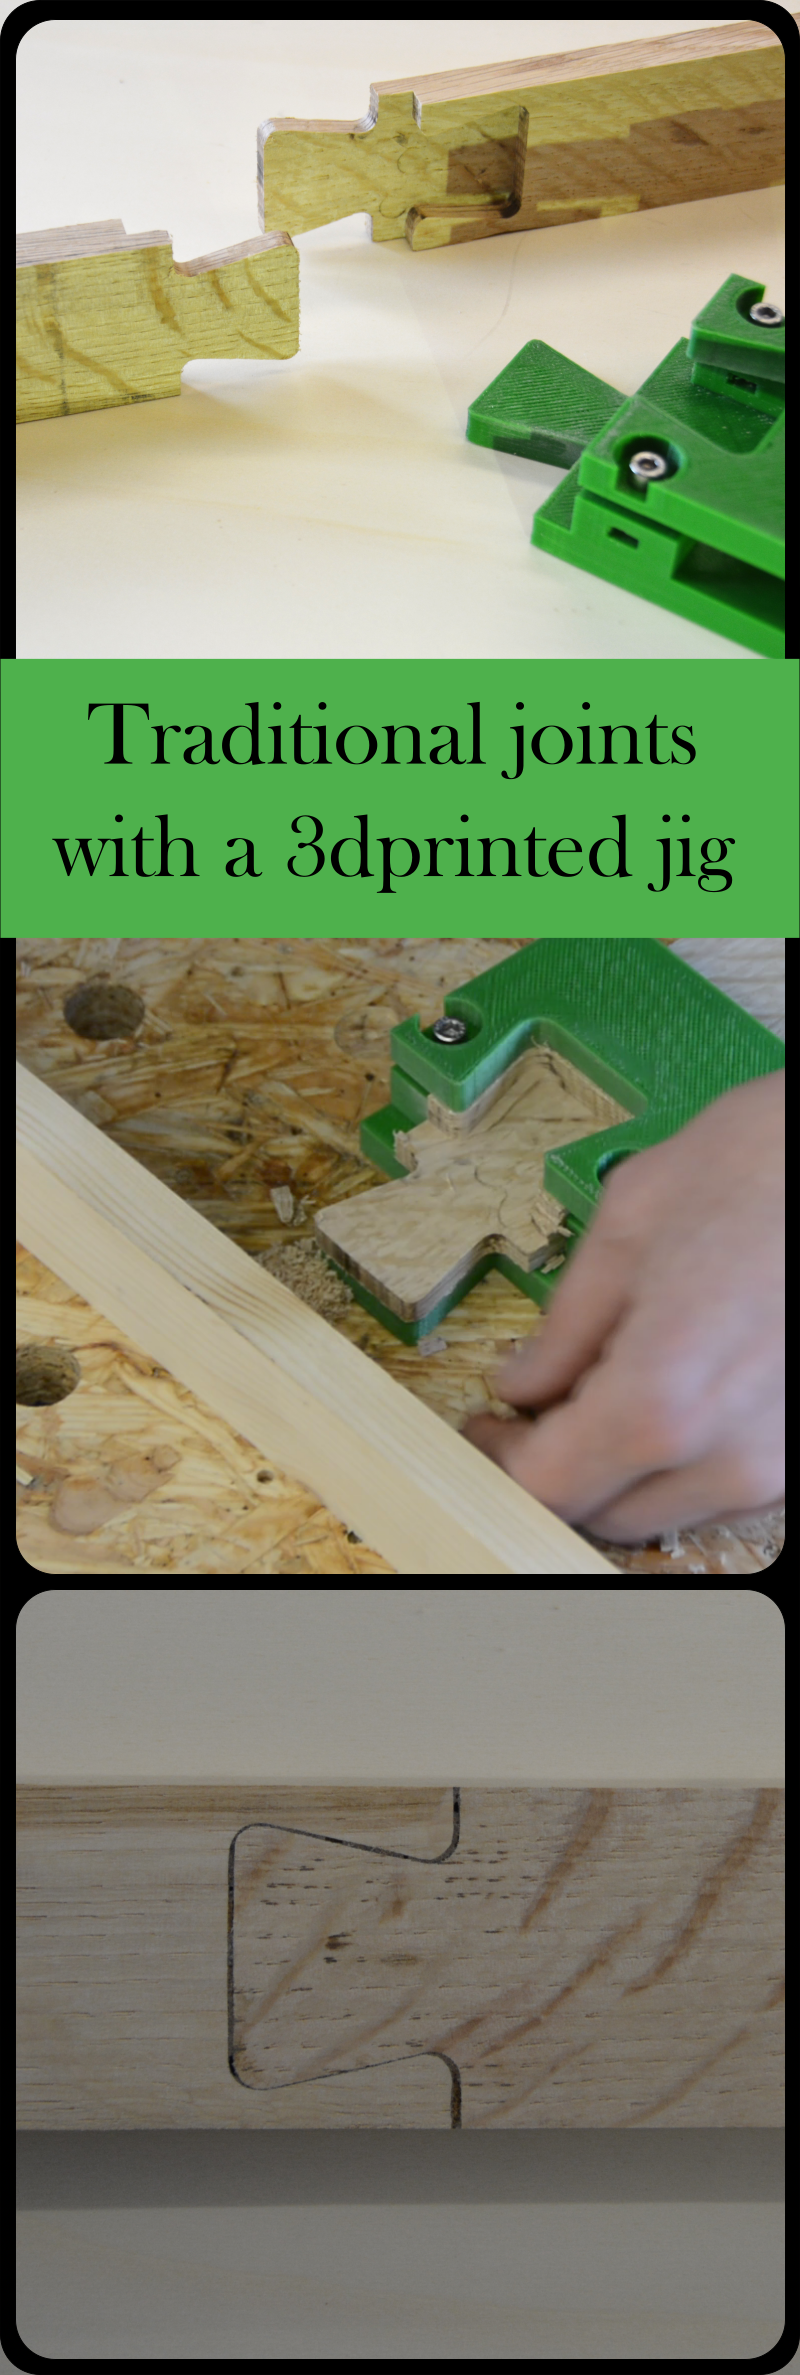 Traditional German joinery is simple with this free 3dprinted jig